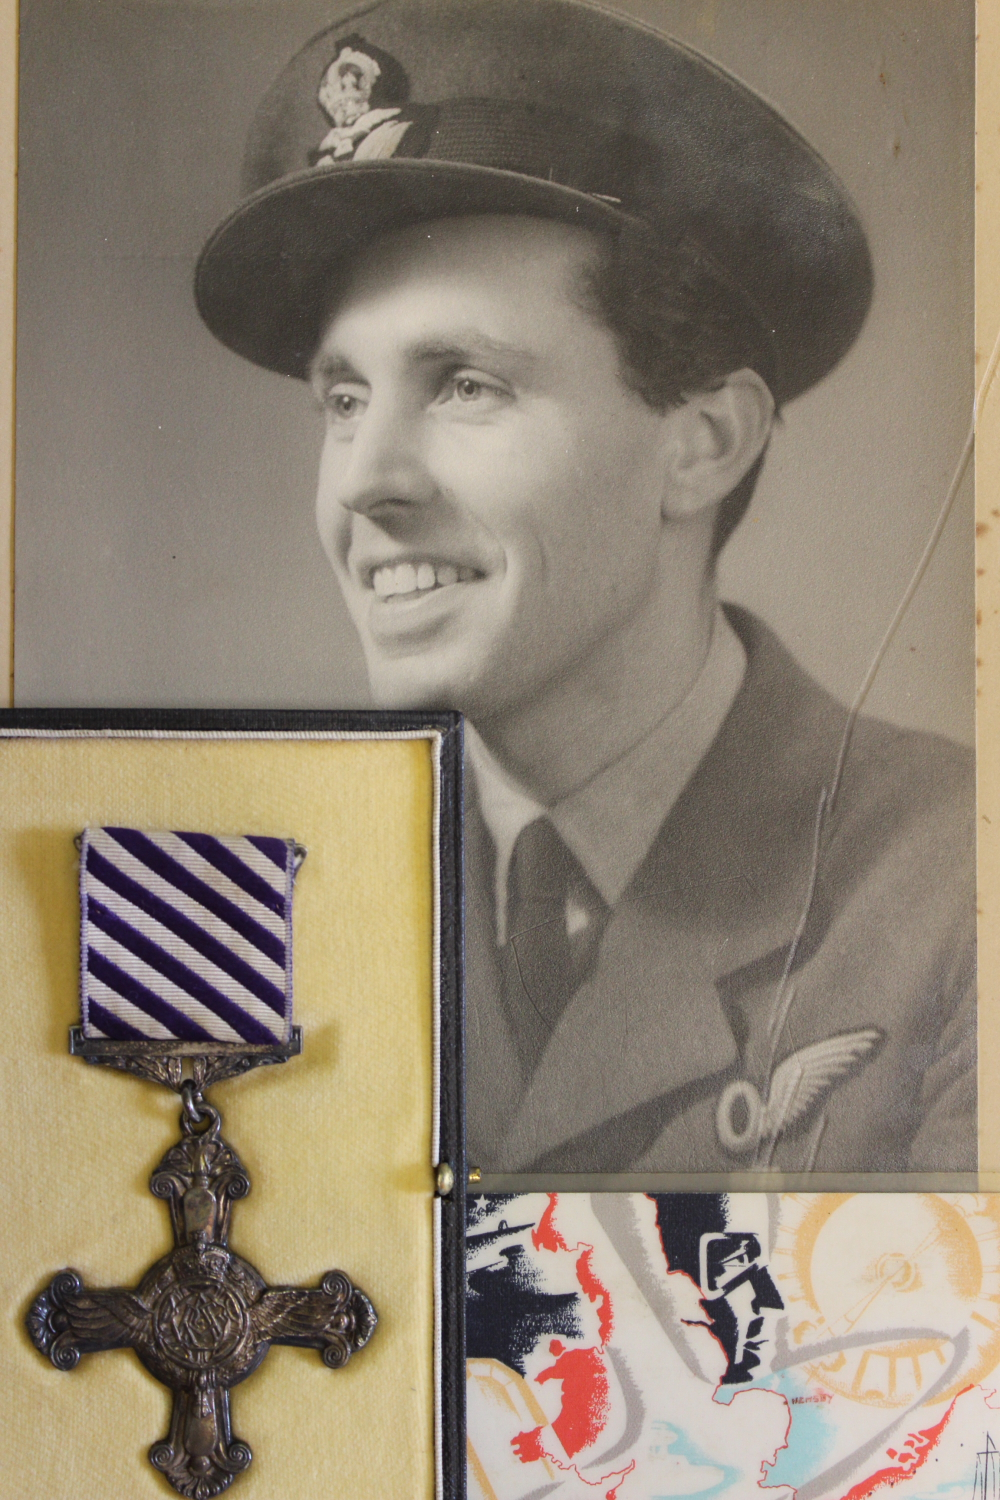 Second World War KIA SOE Distinguished Flying Cross, to 162782 P/O Dudley Northover, dated 1944 to